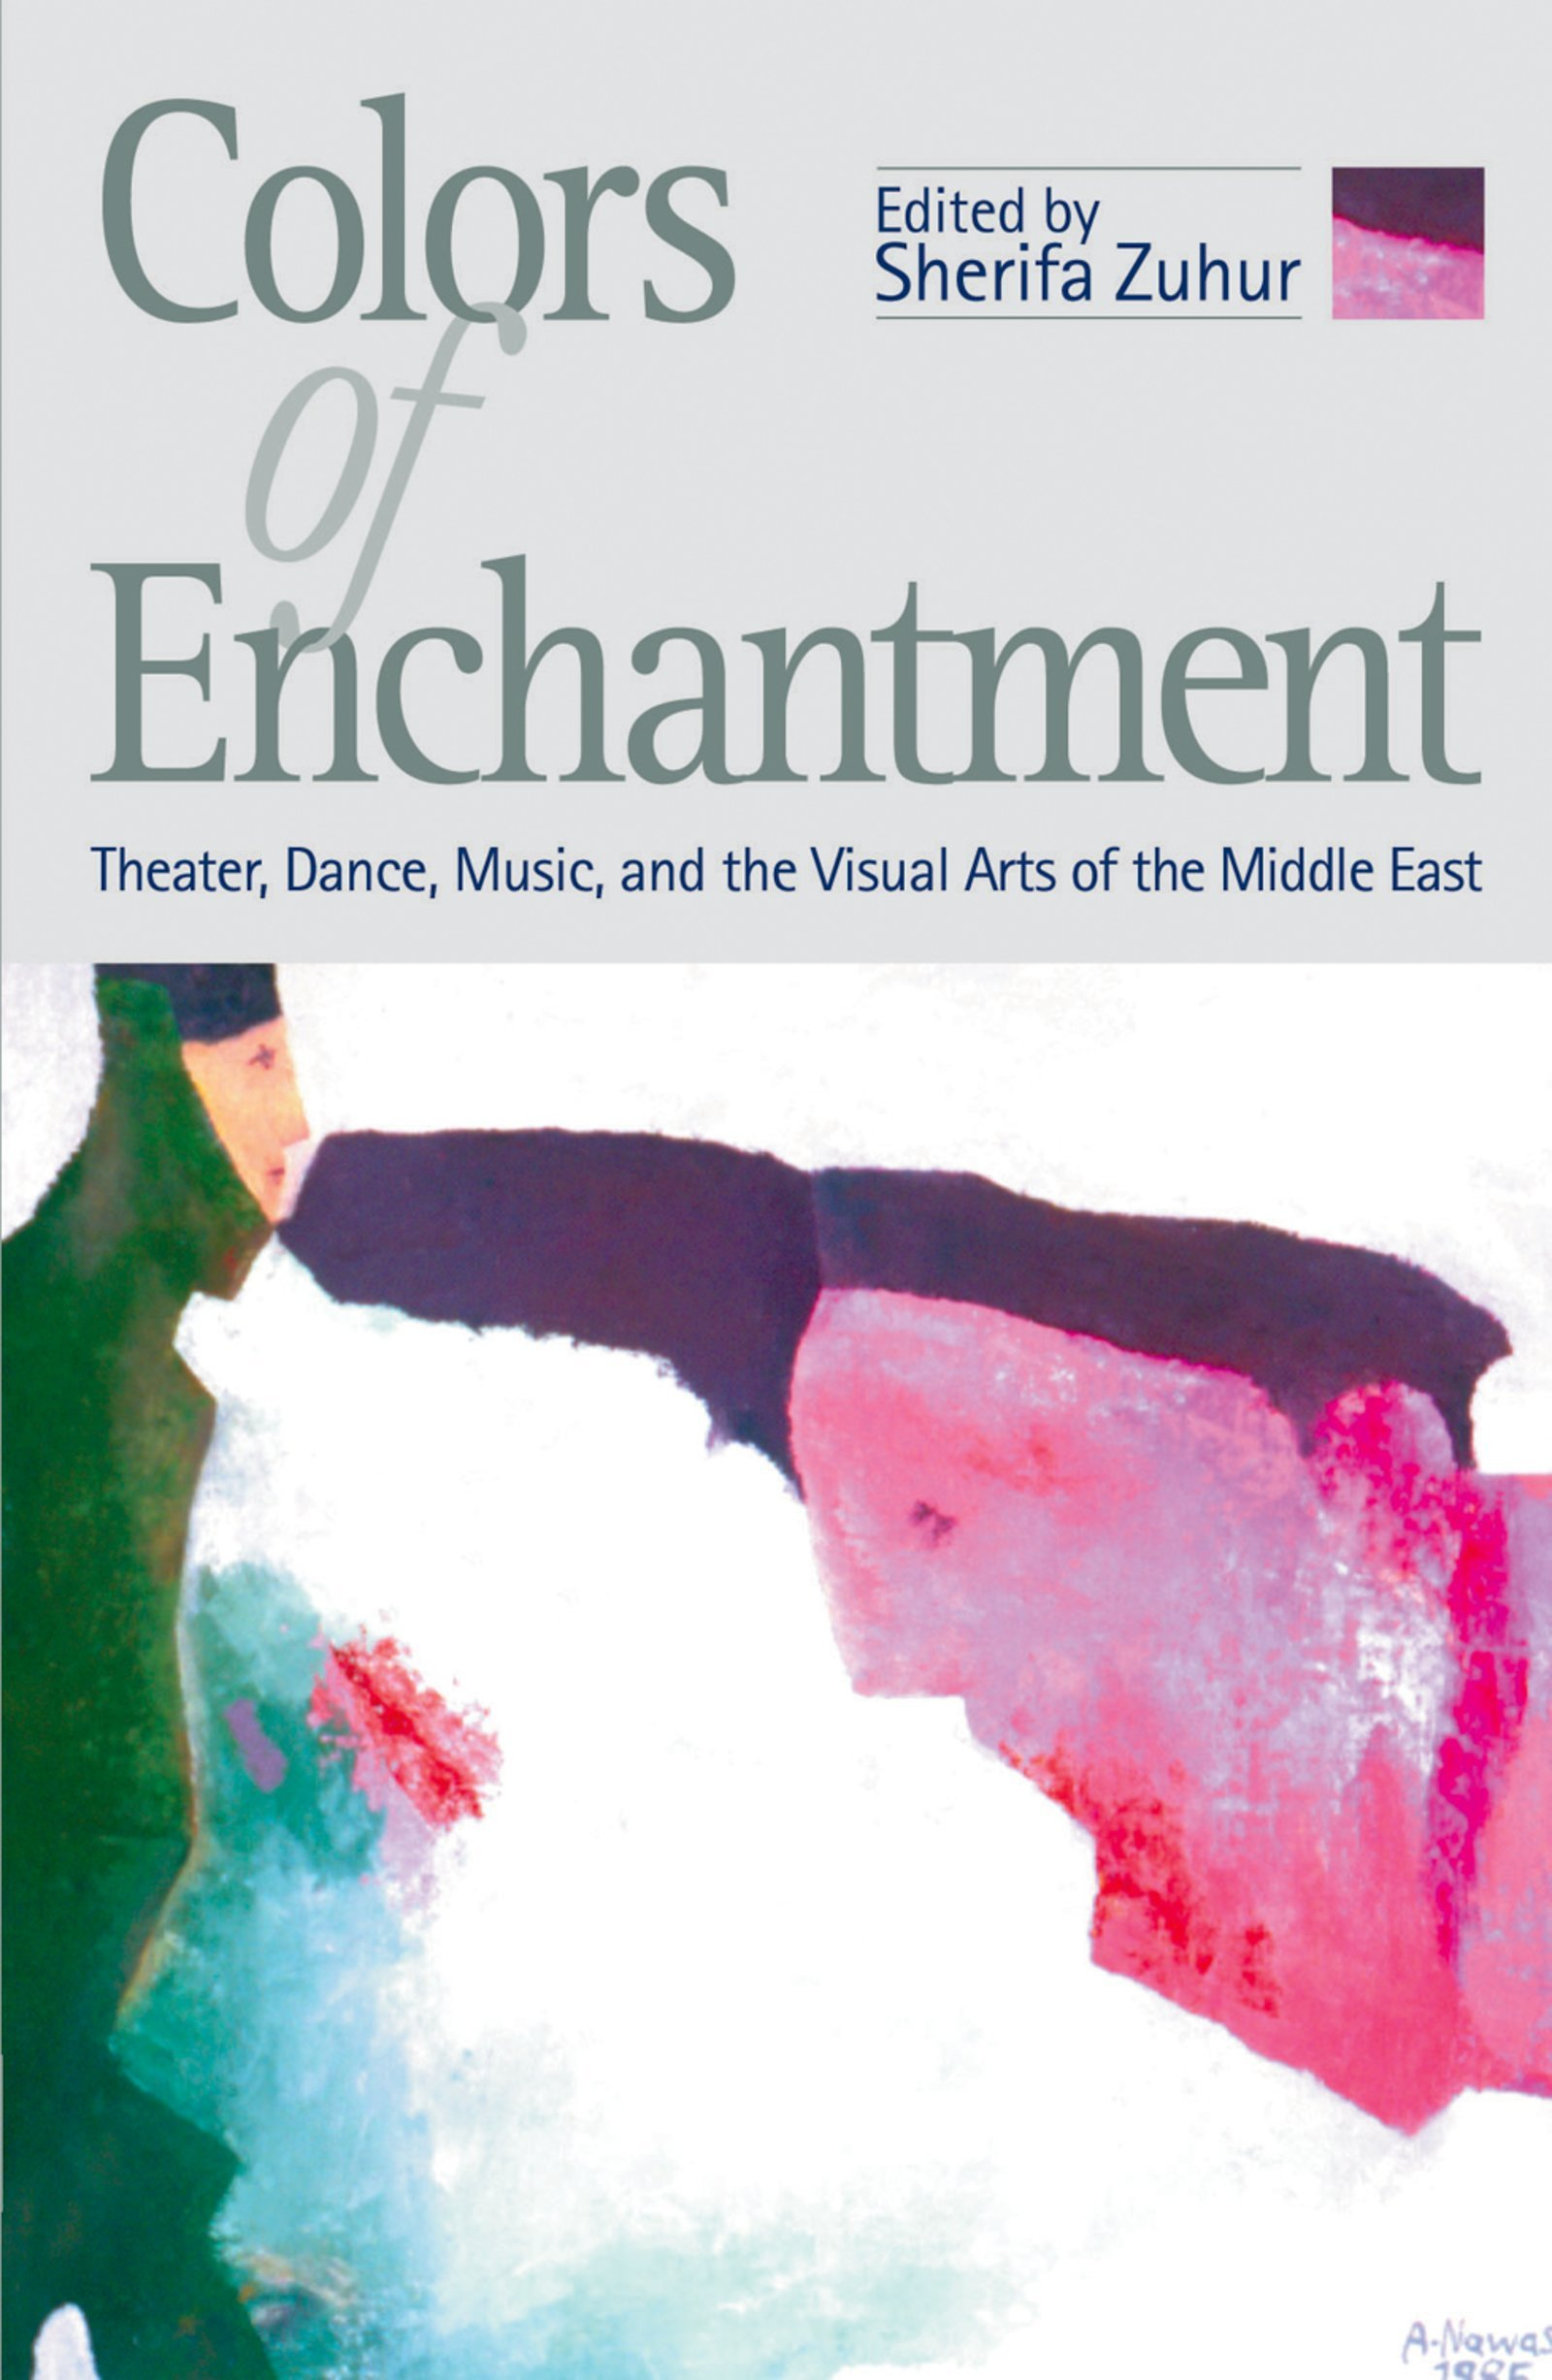 Colors of Enchantment: Theater, Dance, Music, and the Visual Arts of the Middle East pdf